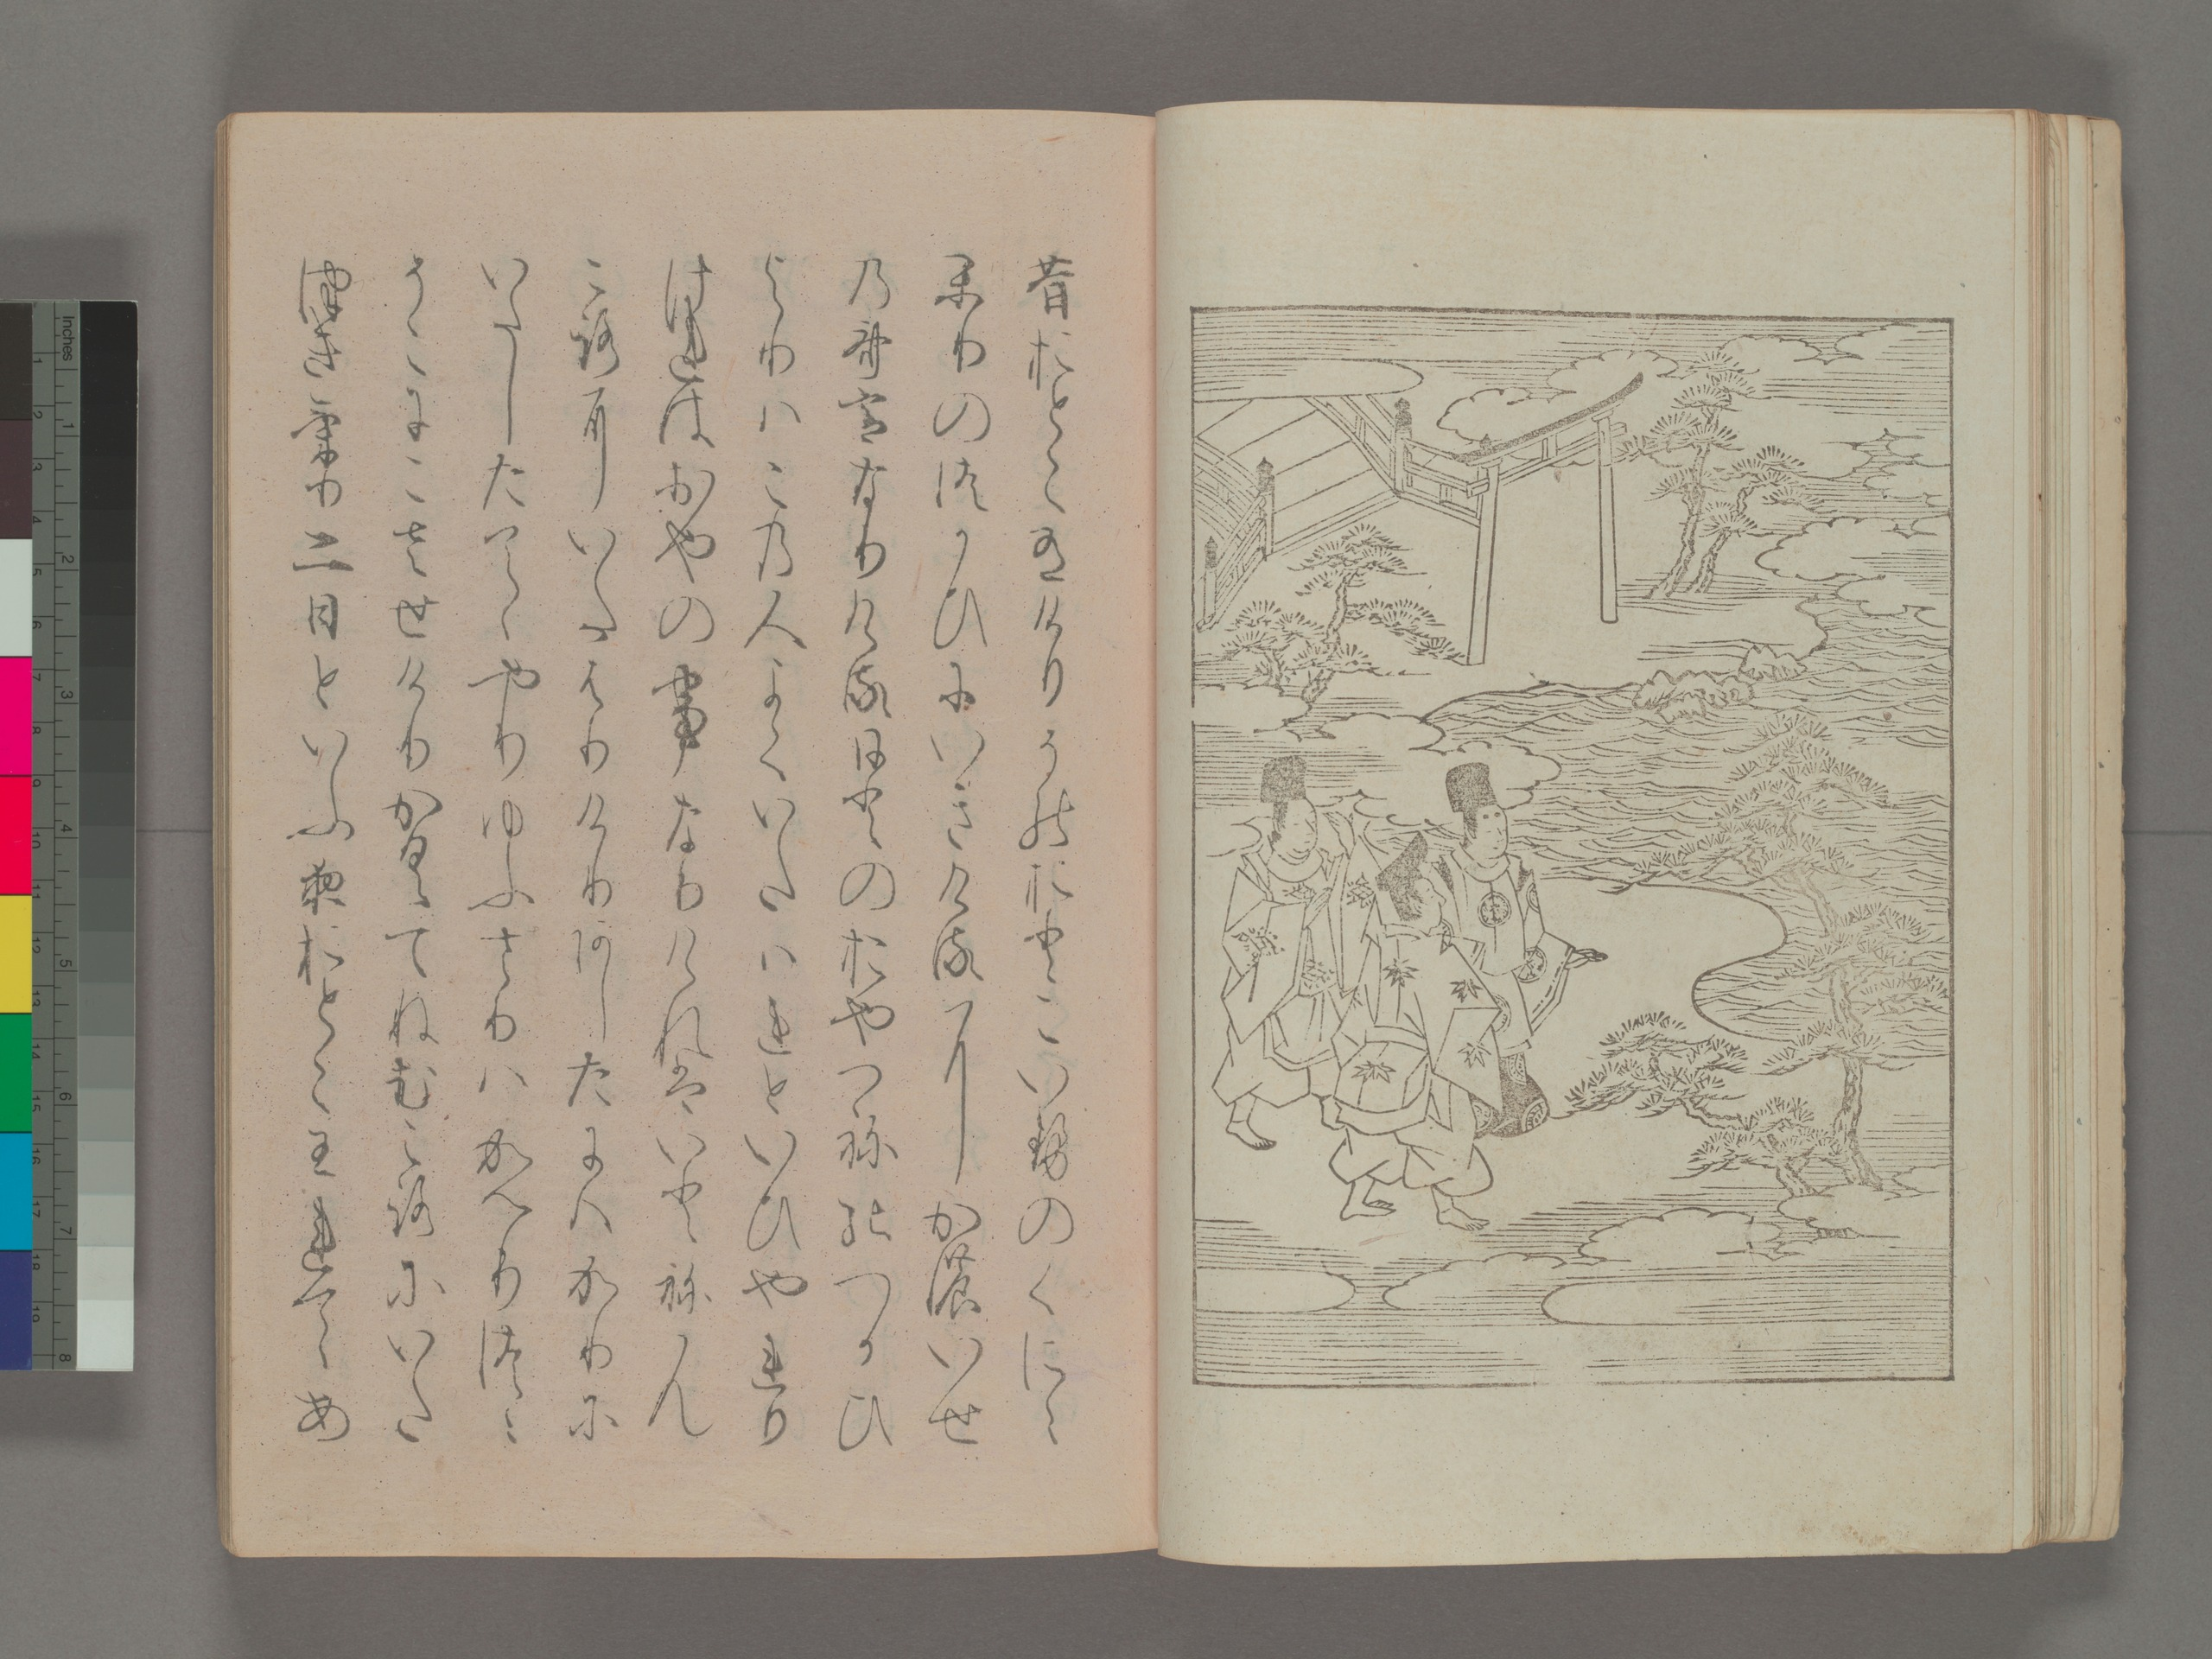 """Spencer Collection, The New York Public Library. """"Ise monogatari = The Tales of Ise."""" The New York Public Library Digital Collections. 1608"""